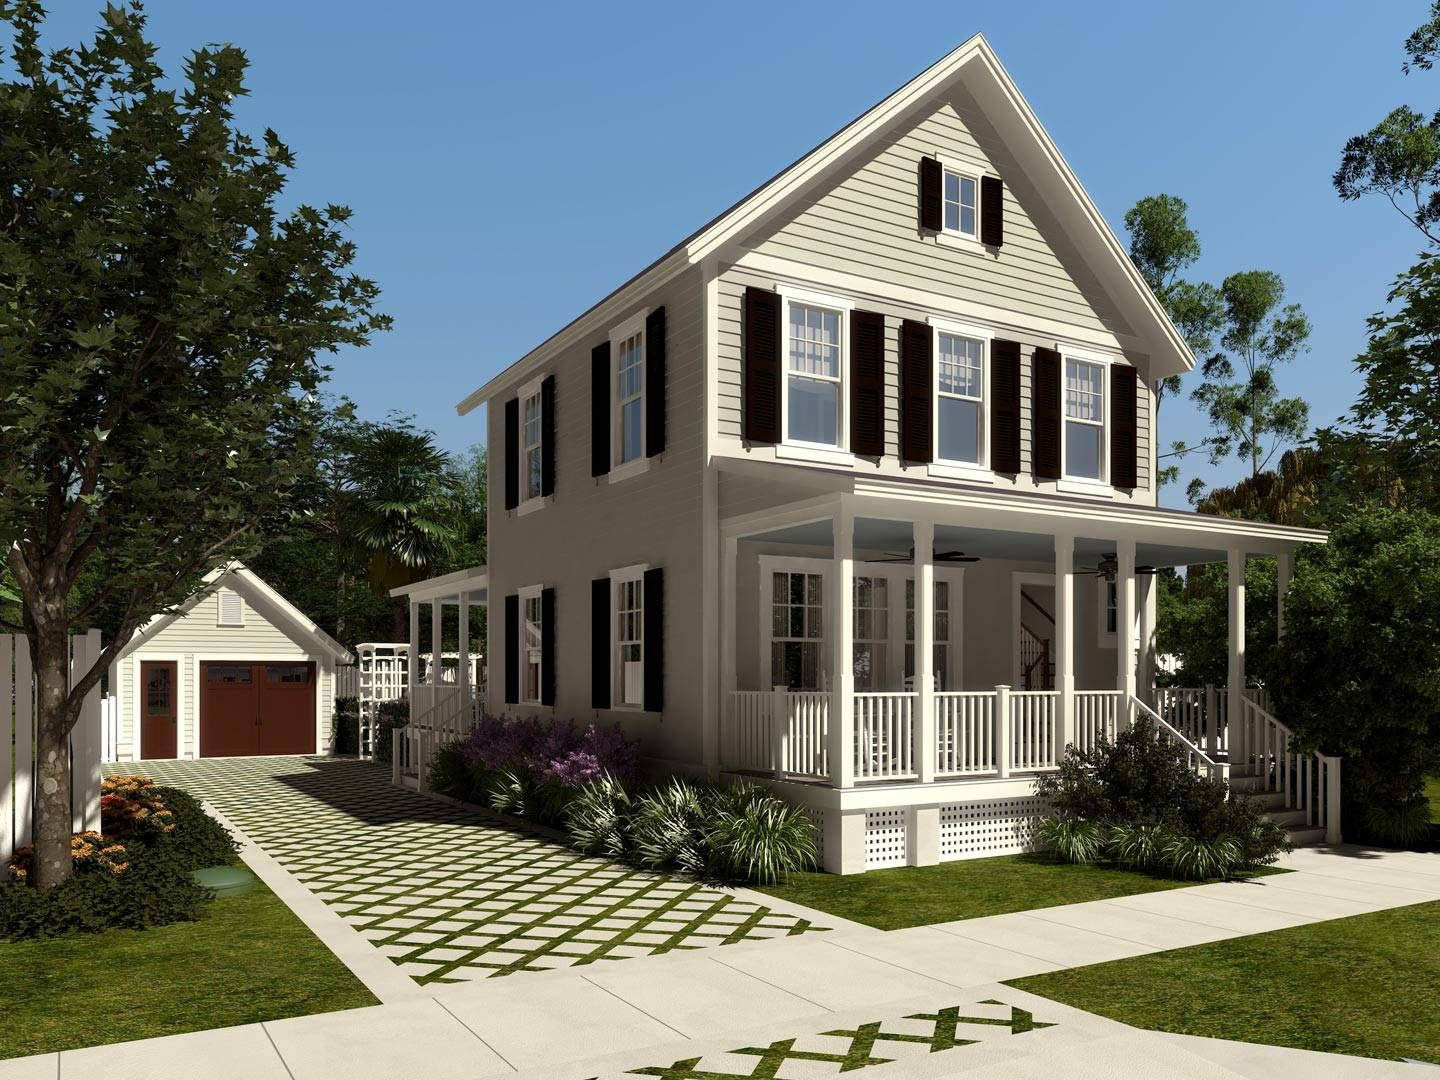 9 building plans for cozy affordable cottages folk for New home plans